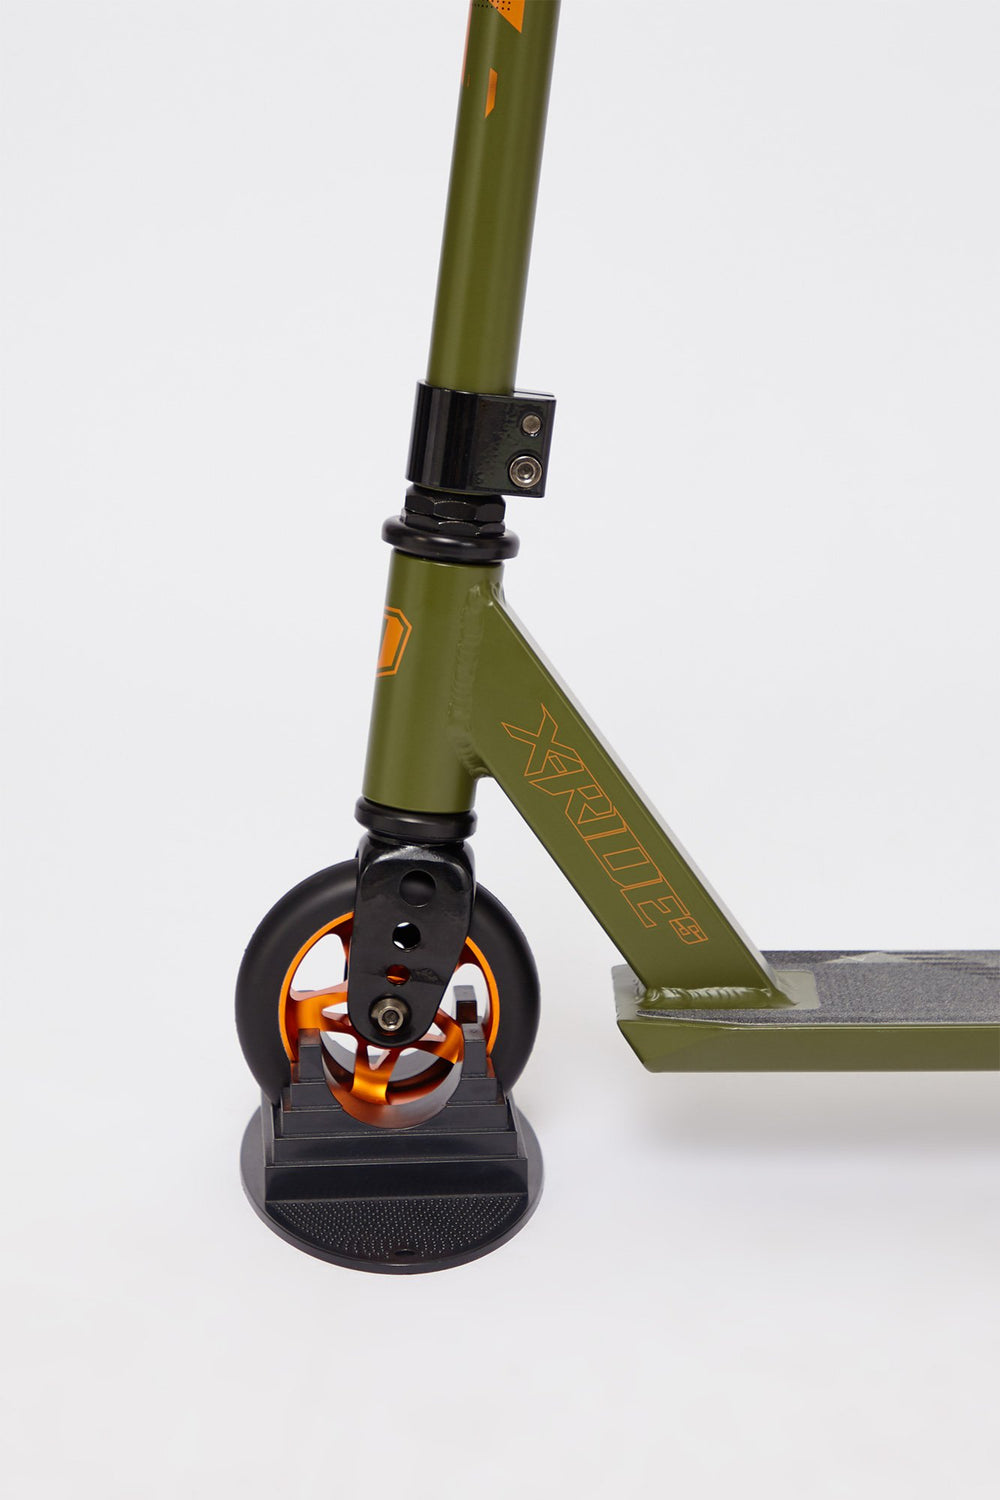 Trottinette X-Ride-S Kaki Et Orange Pivot Vert fonce